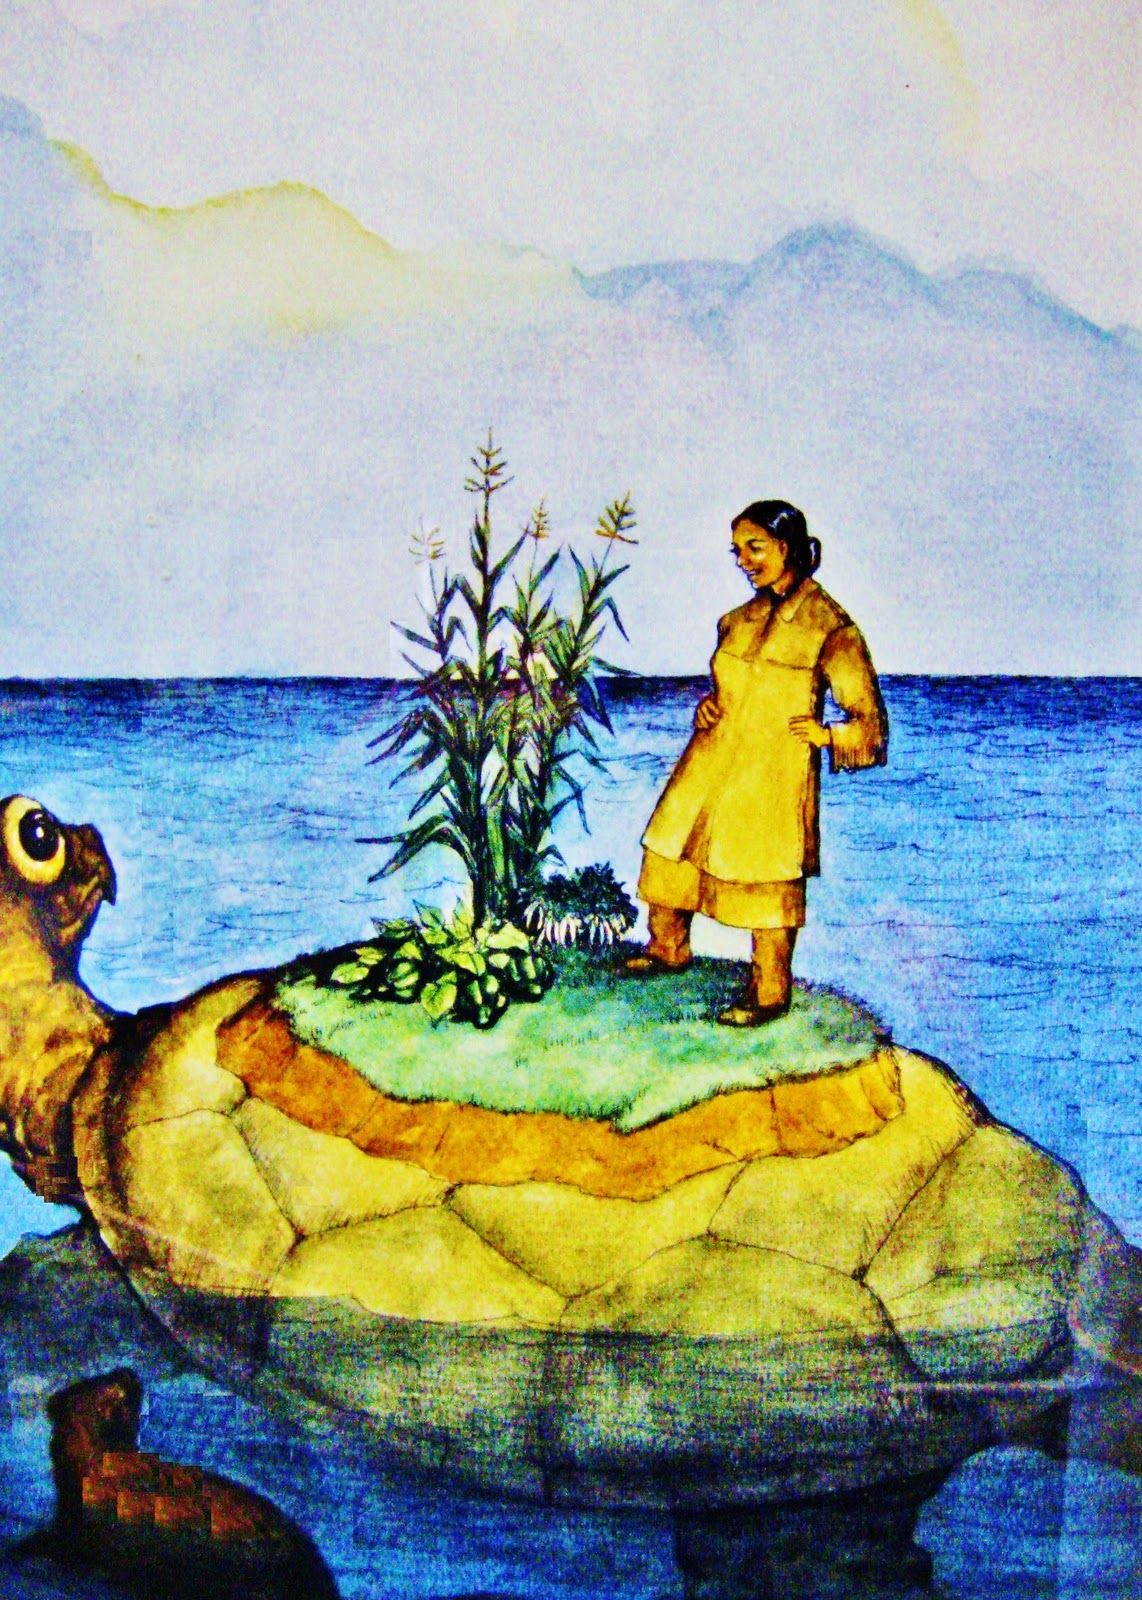 What is a summary of the Iroquois creation story?